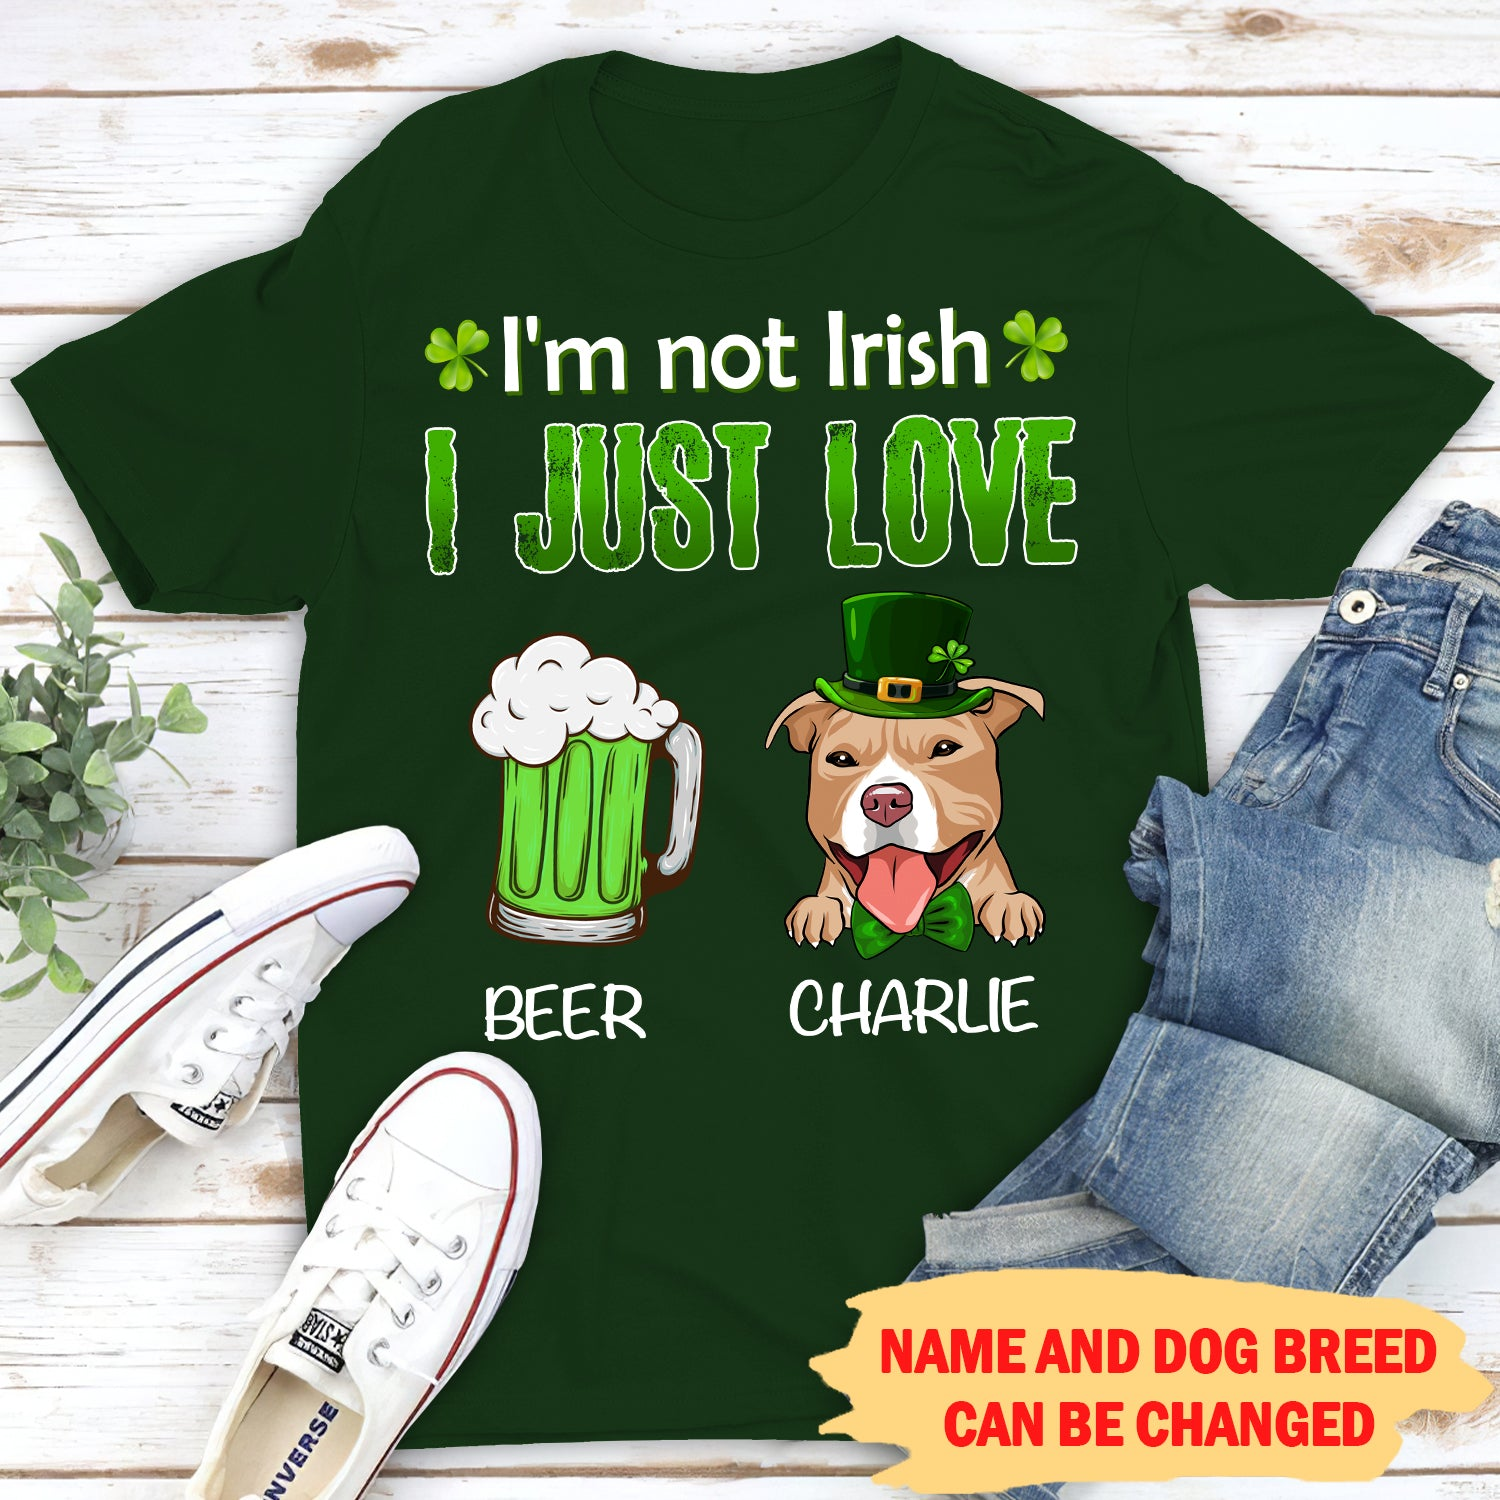 I Just Love Beer And Dog - Personalized Custom Unisex T-Shirt